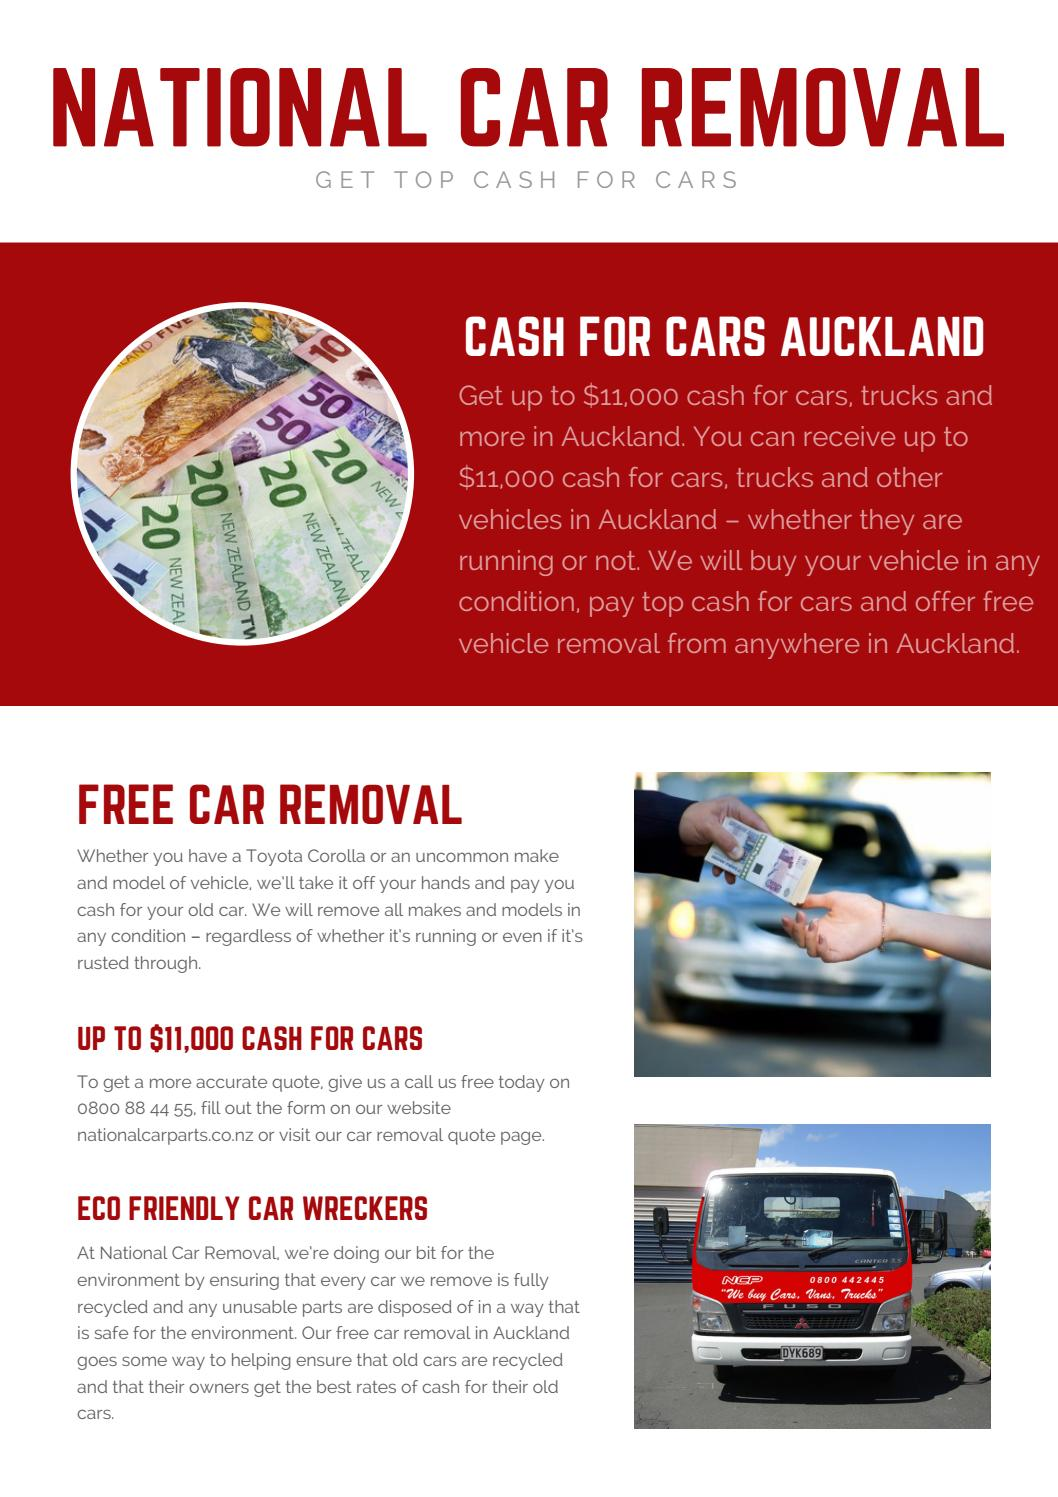 Car wreckers Auckland by National Car parts - issuu